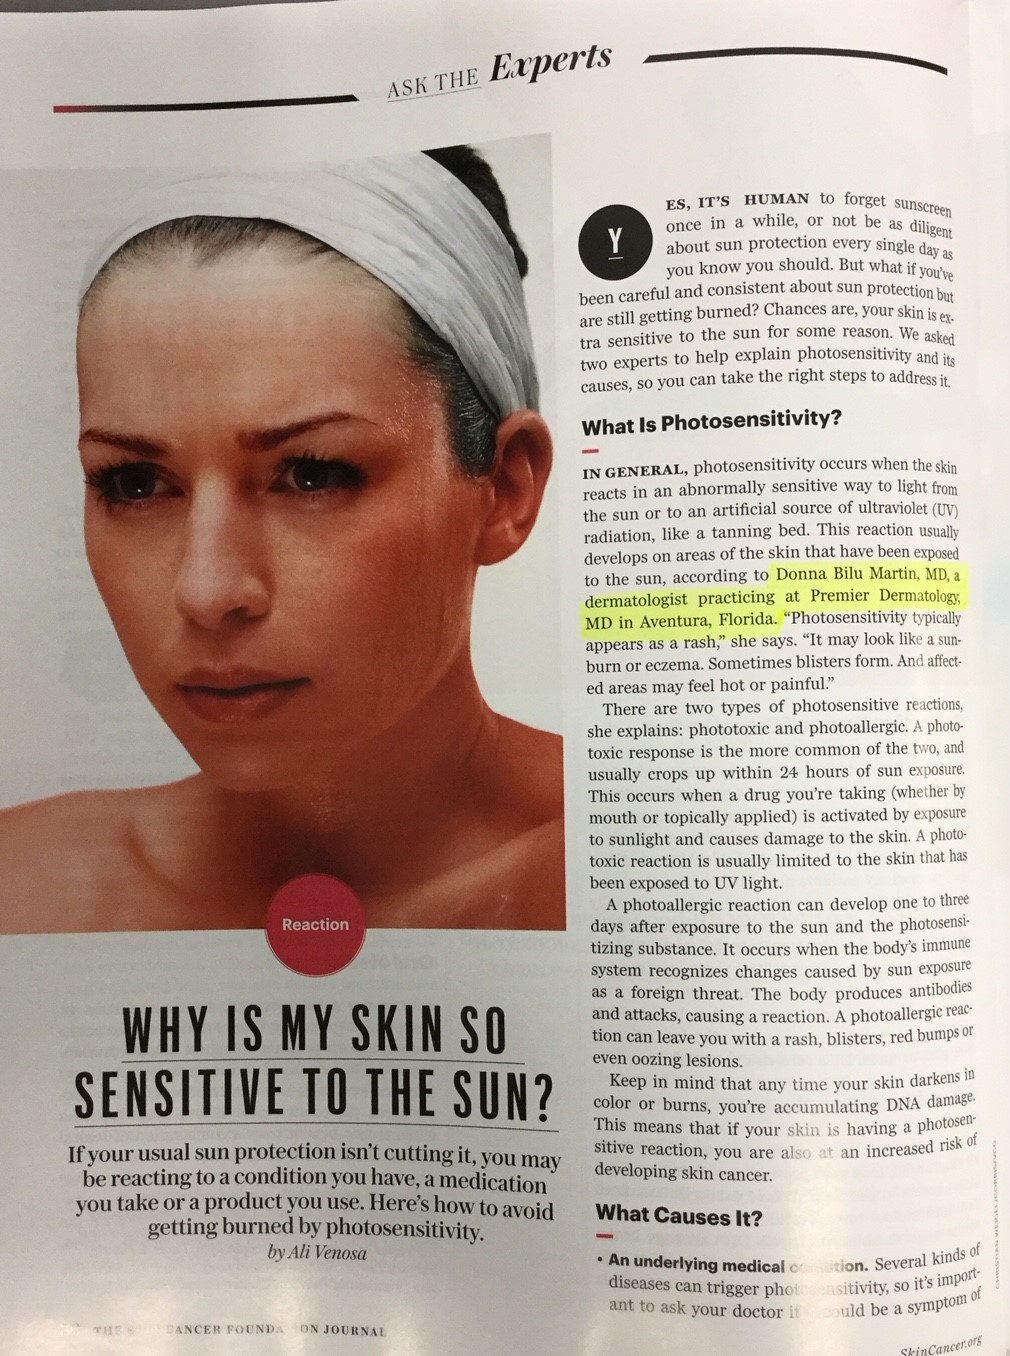 Donna Bilu Martin, MD discusses photo reactions in The Skin Cancer Foundation's 40th Birthday Special Issue